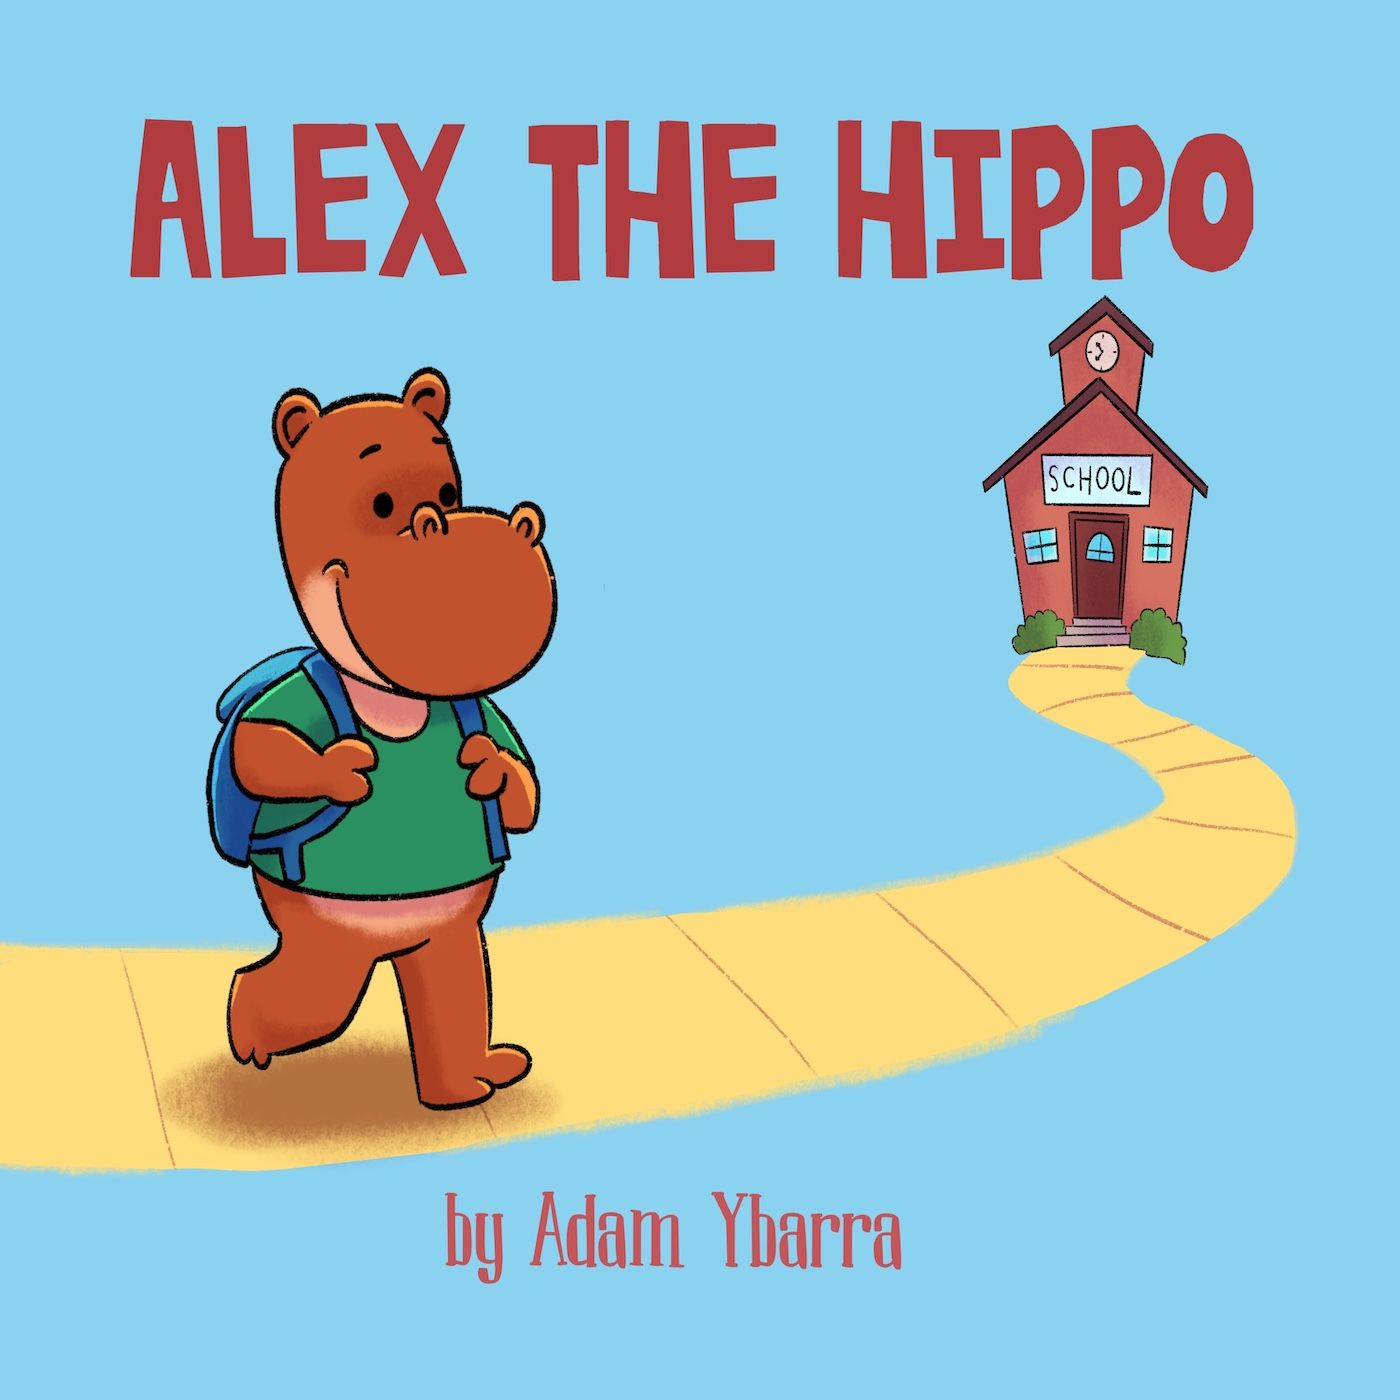 Bringing out the Best in our children